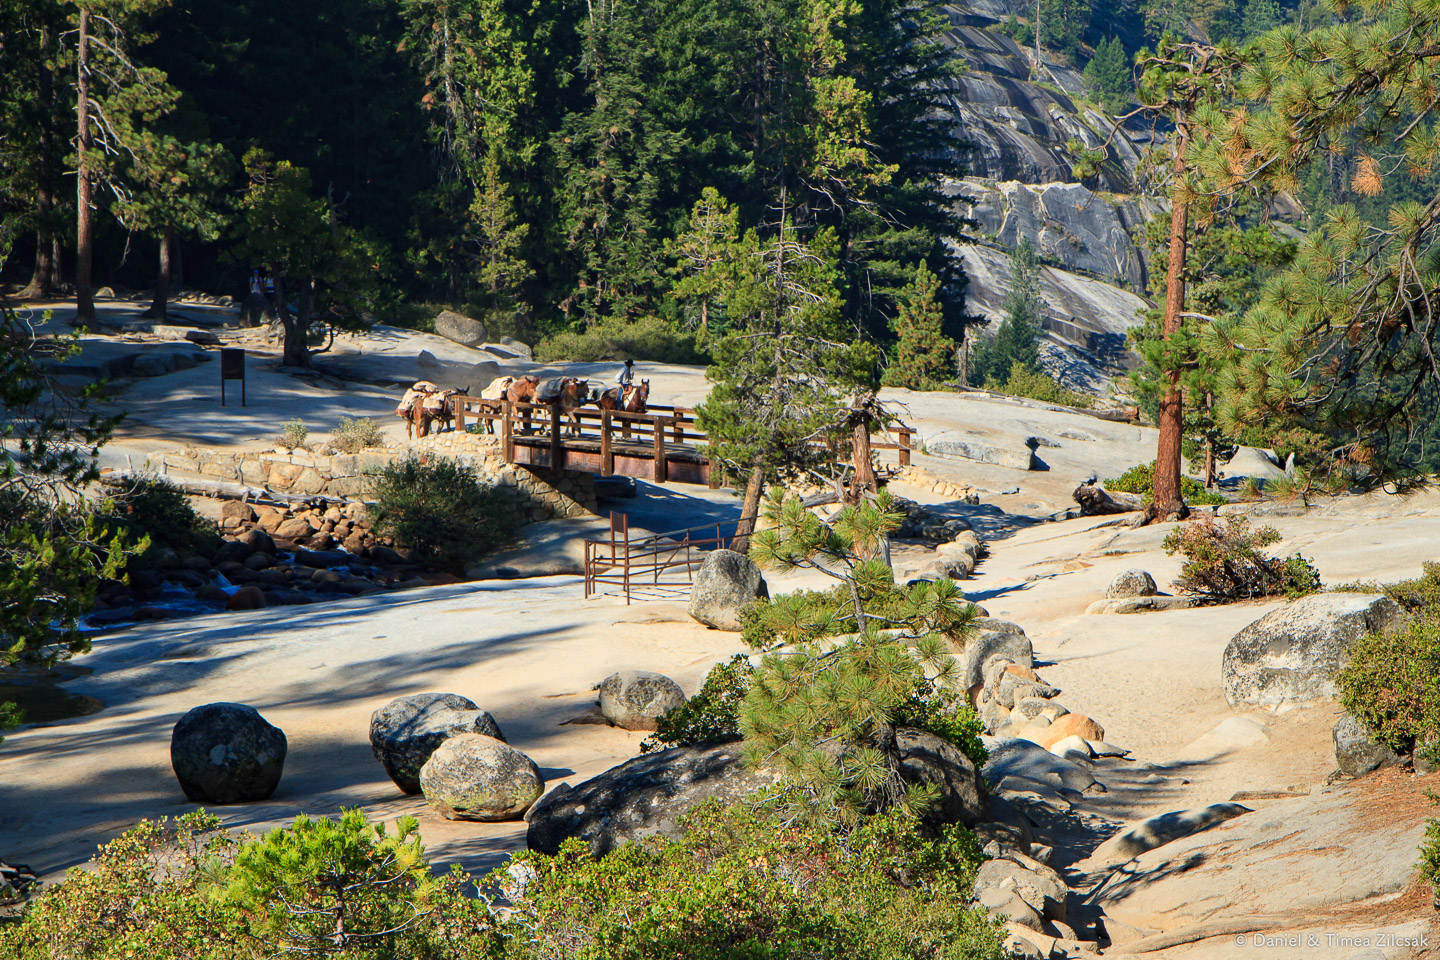 Mules carrying supplies for High Sierra Camps - Backpacking Yosemite National Park